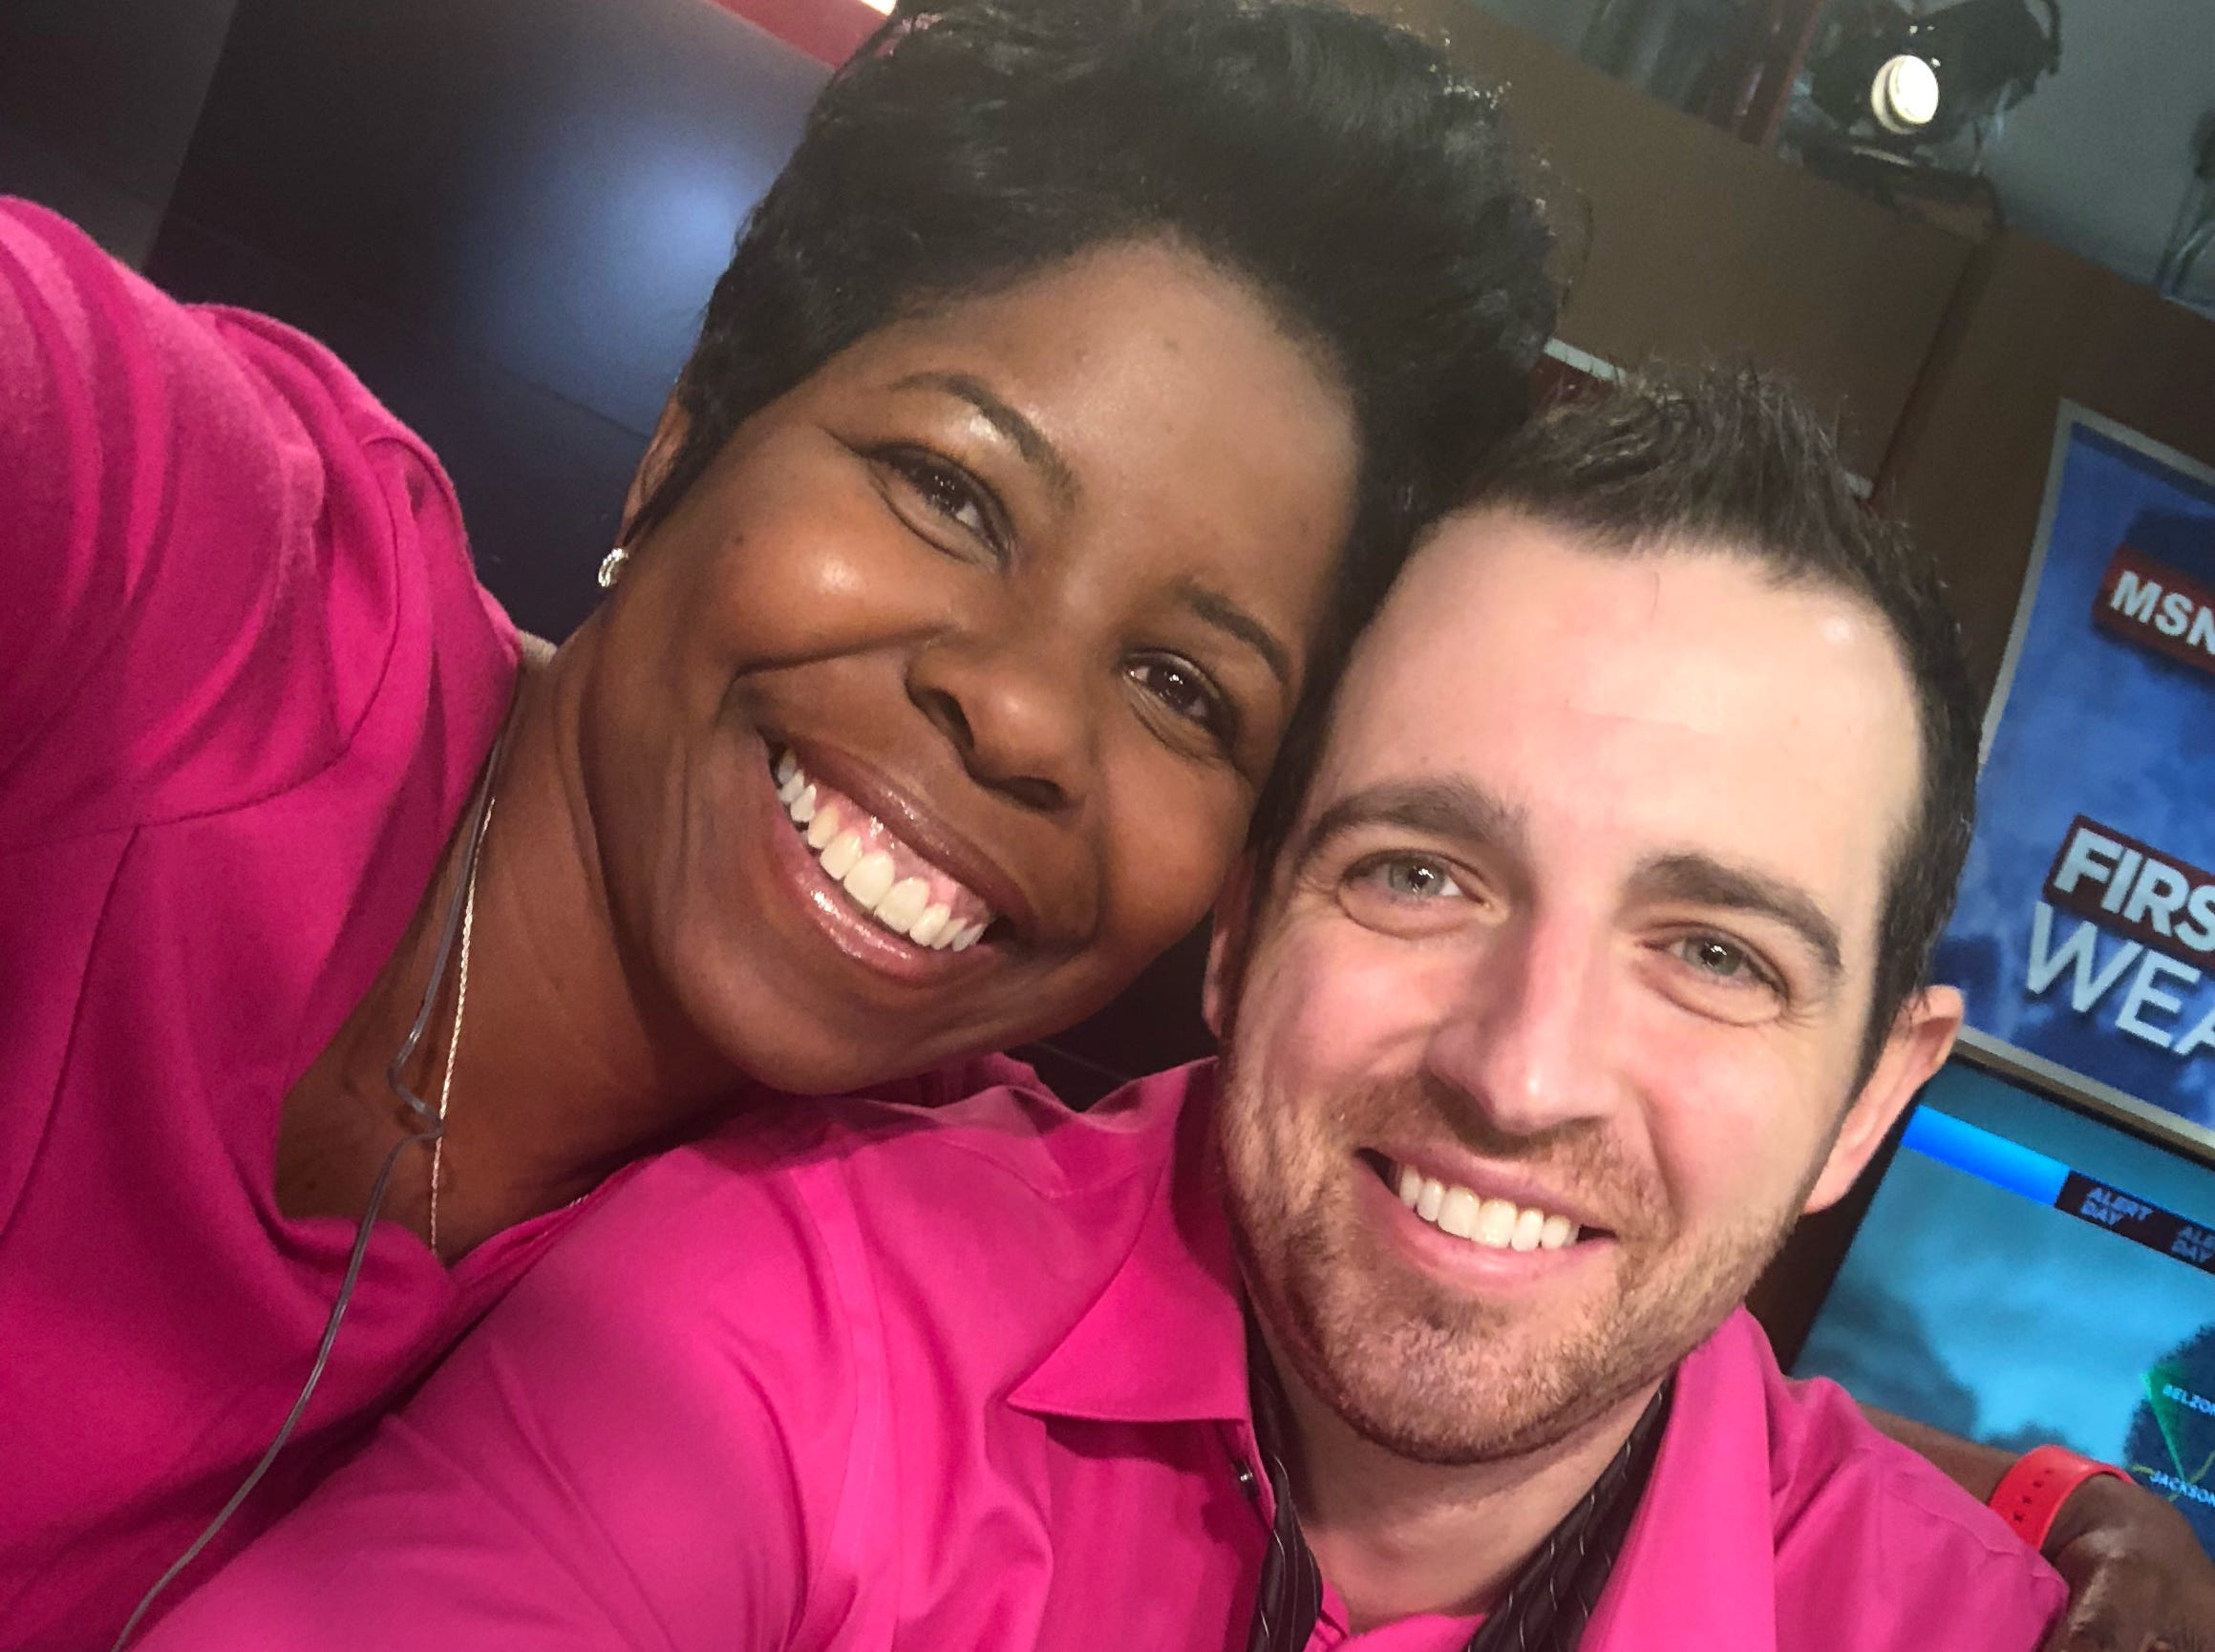 WDBD Fox 40 anchor Mike Sands says co-anchor Melissa Faith Payne has been his constant support throughout his battle with cancer but never treating him differently than she had before he he was diagnosed.